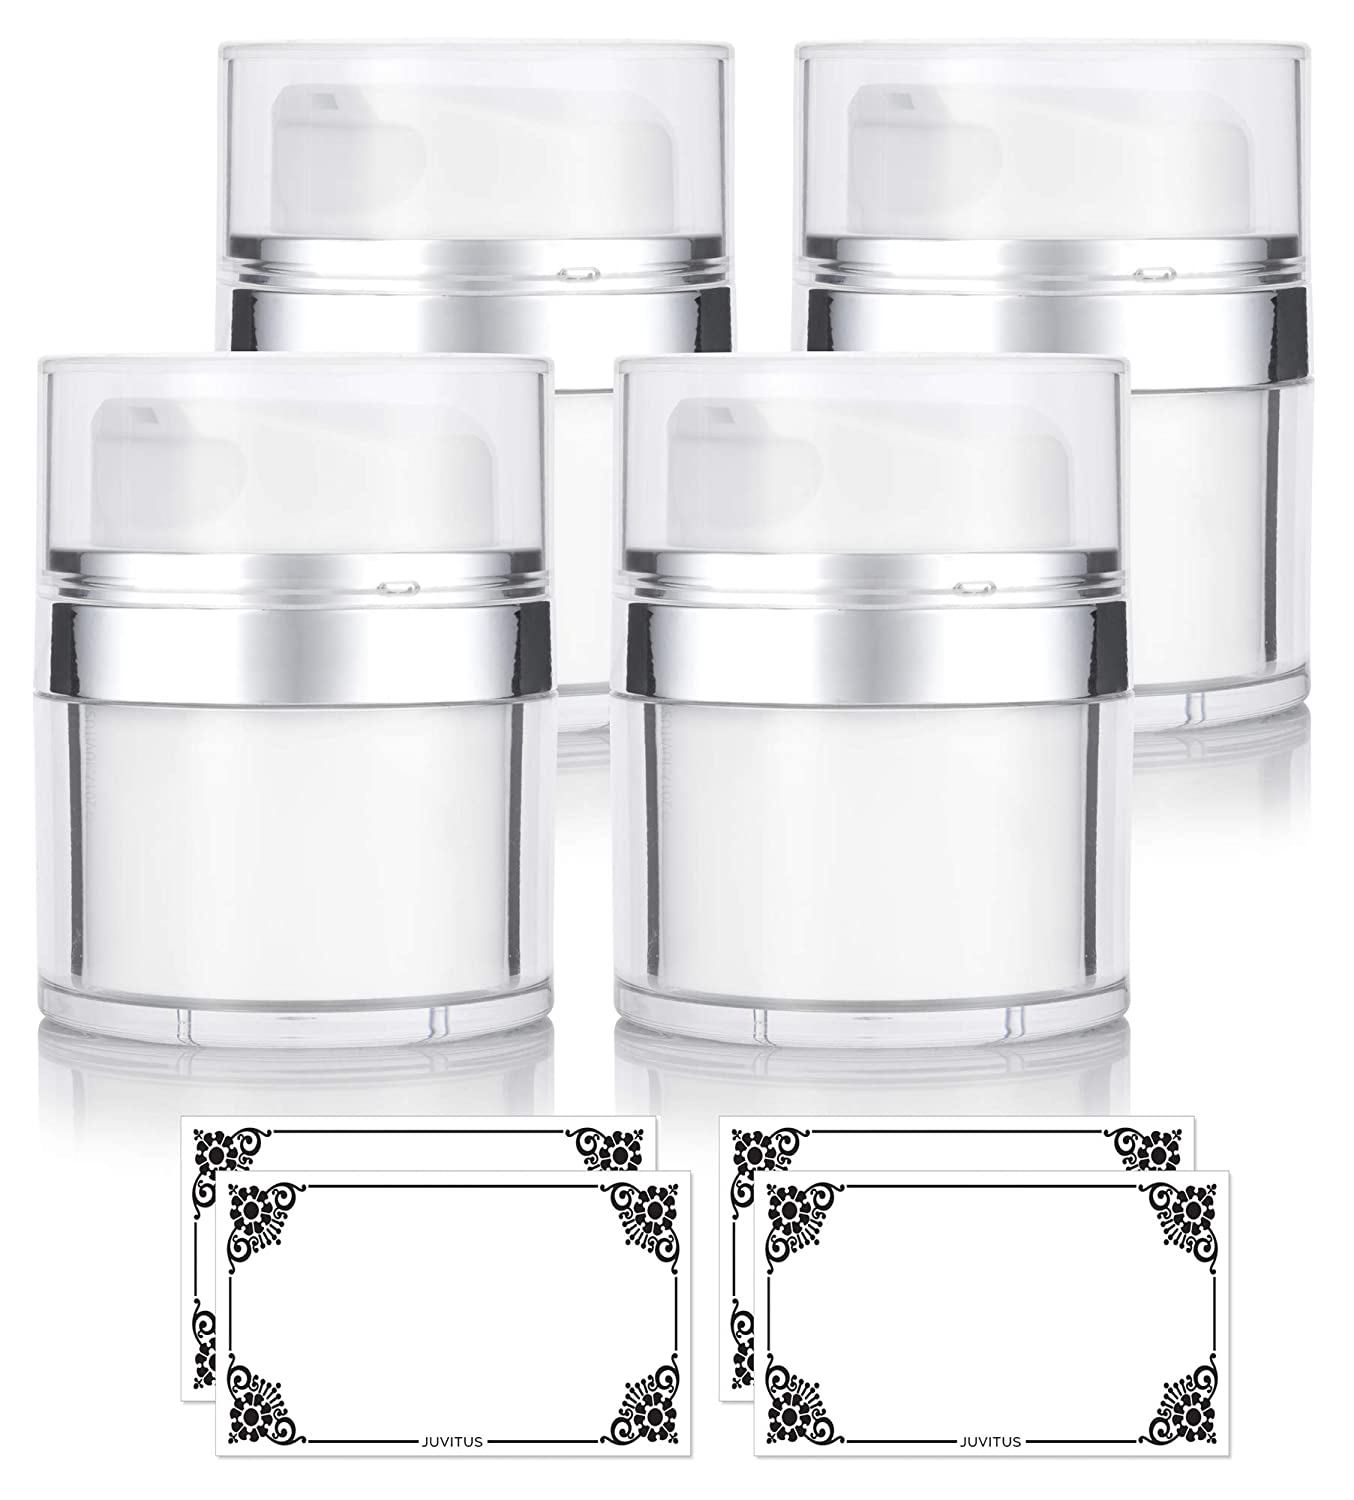 NEW Airless Pump Refillable Jar 1.7 oz / 50 ml (4 pack) keeps out bacteria and air changing oxidation from your skin care products - durable, leak proof, and shatterproof for home or travel